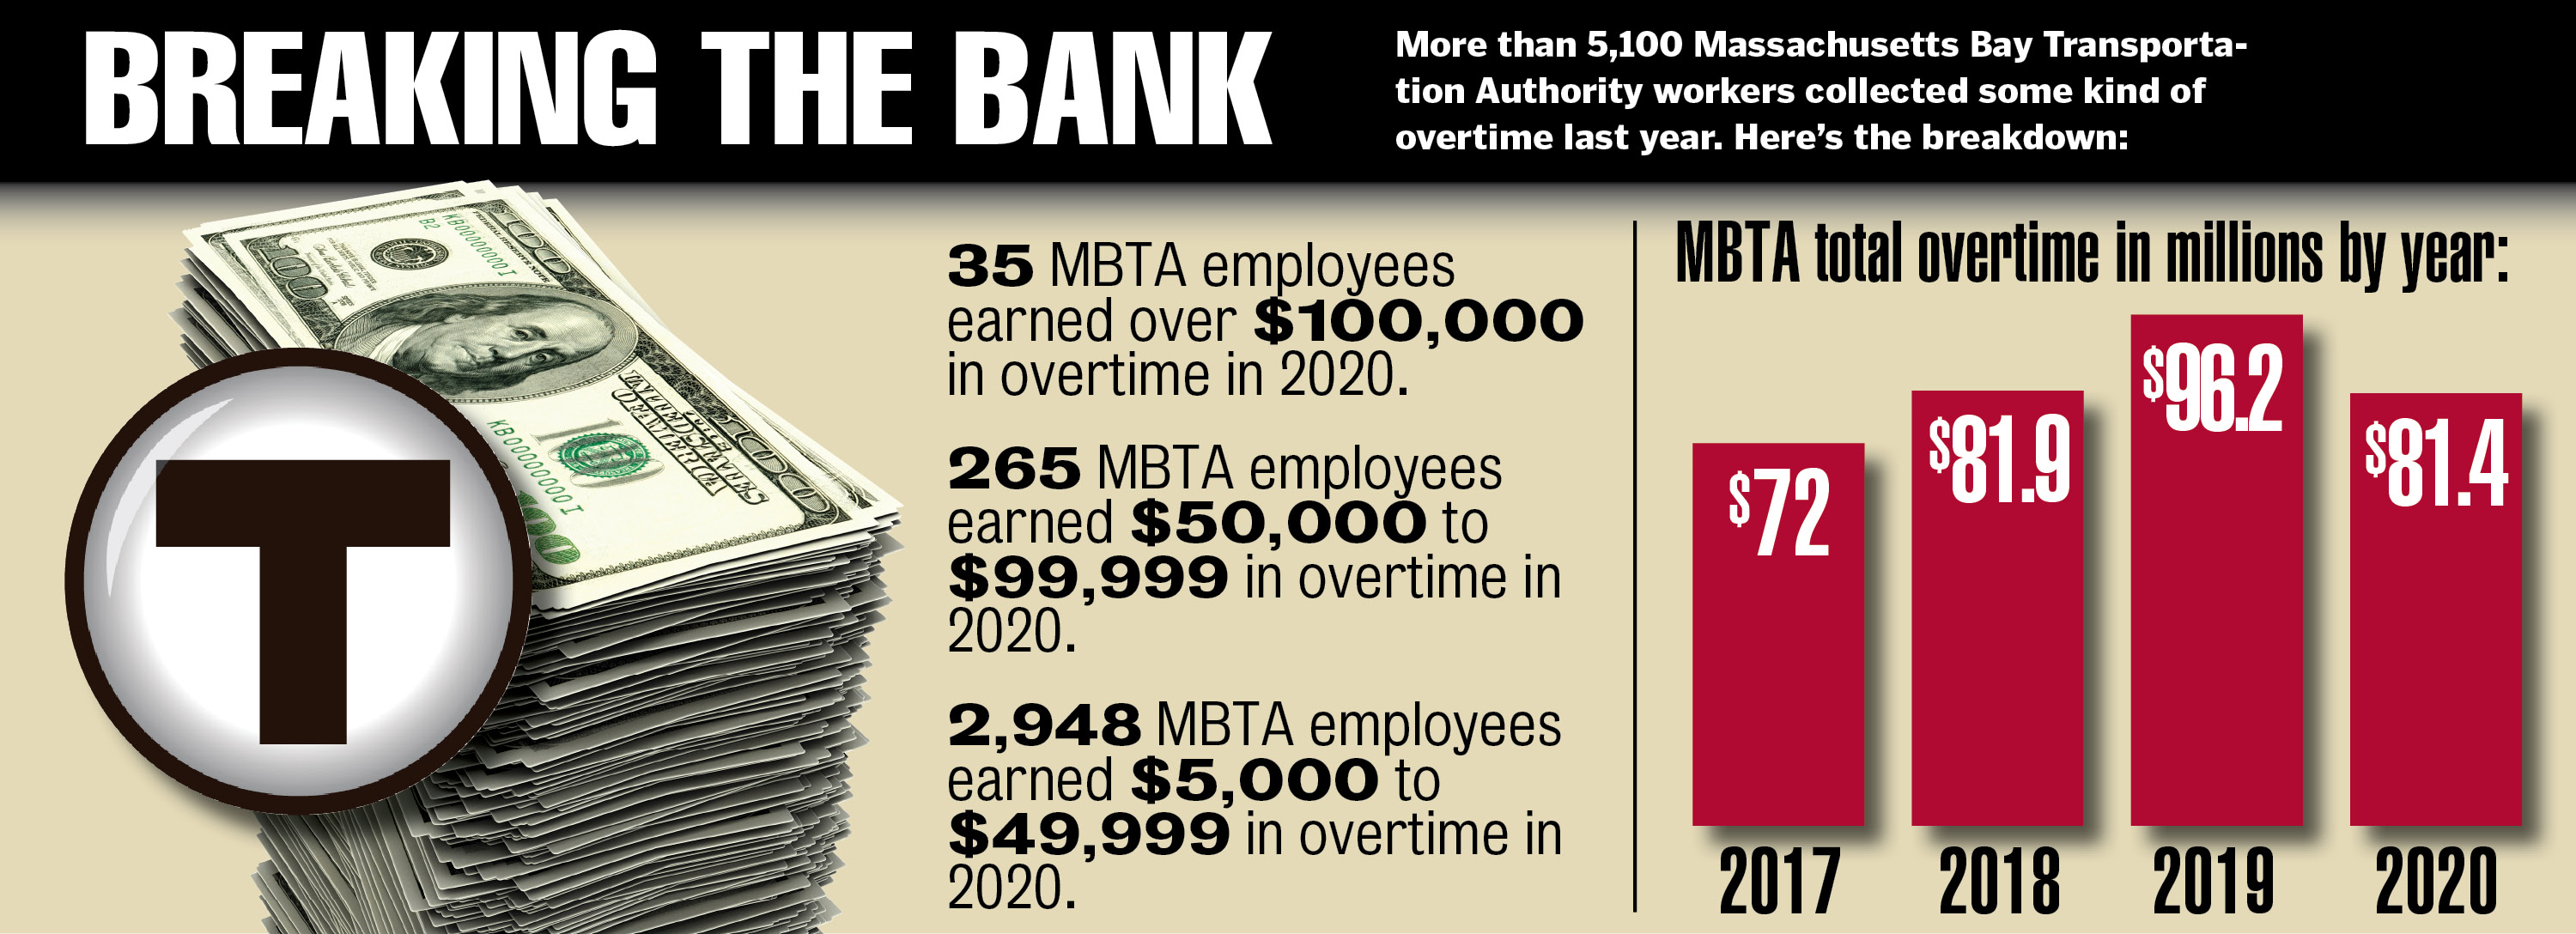 More than 5,100 MBTA employees collected overtime pay of some kind in 2020